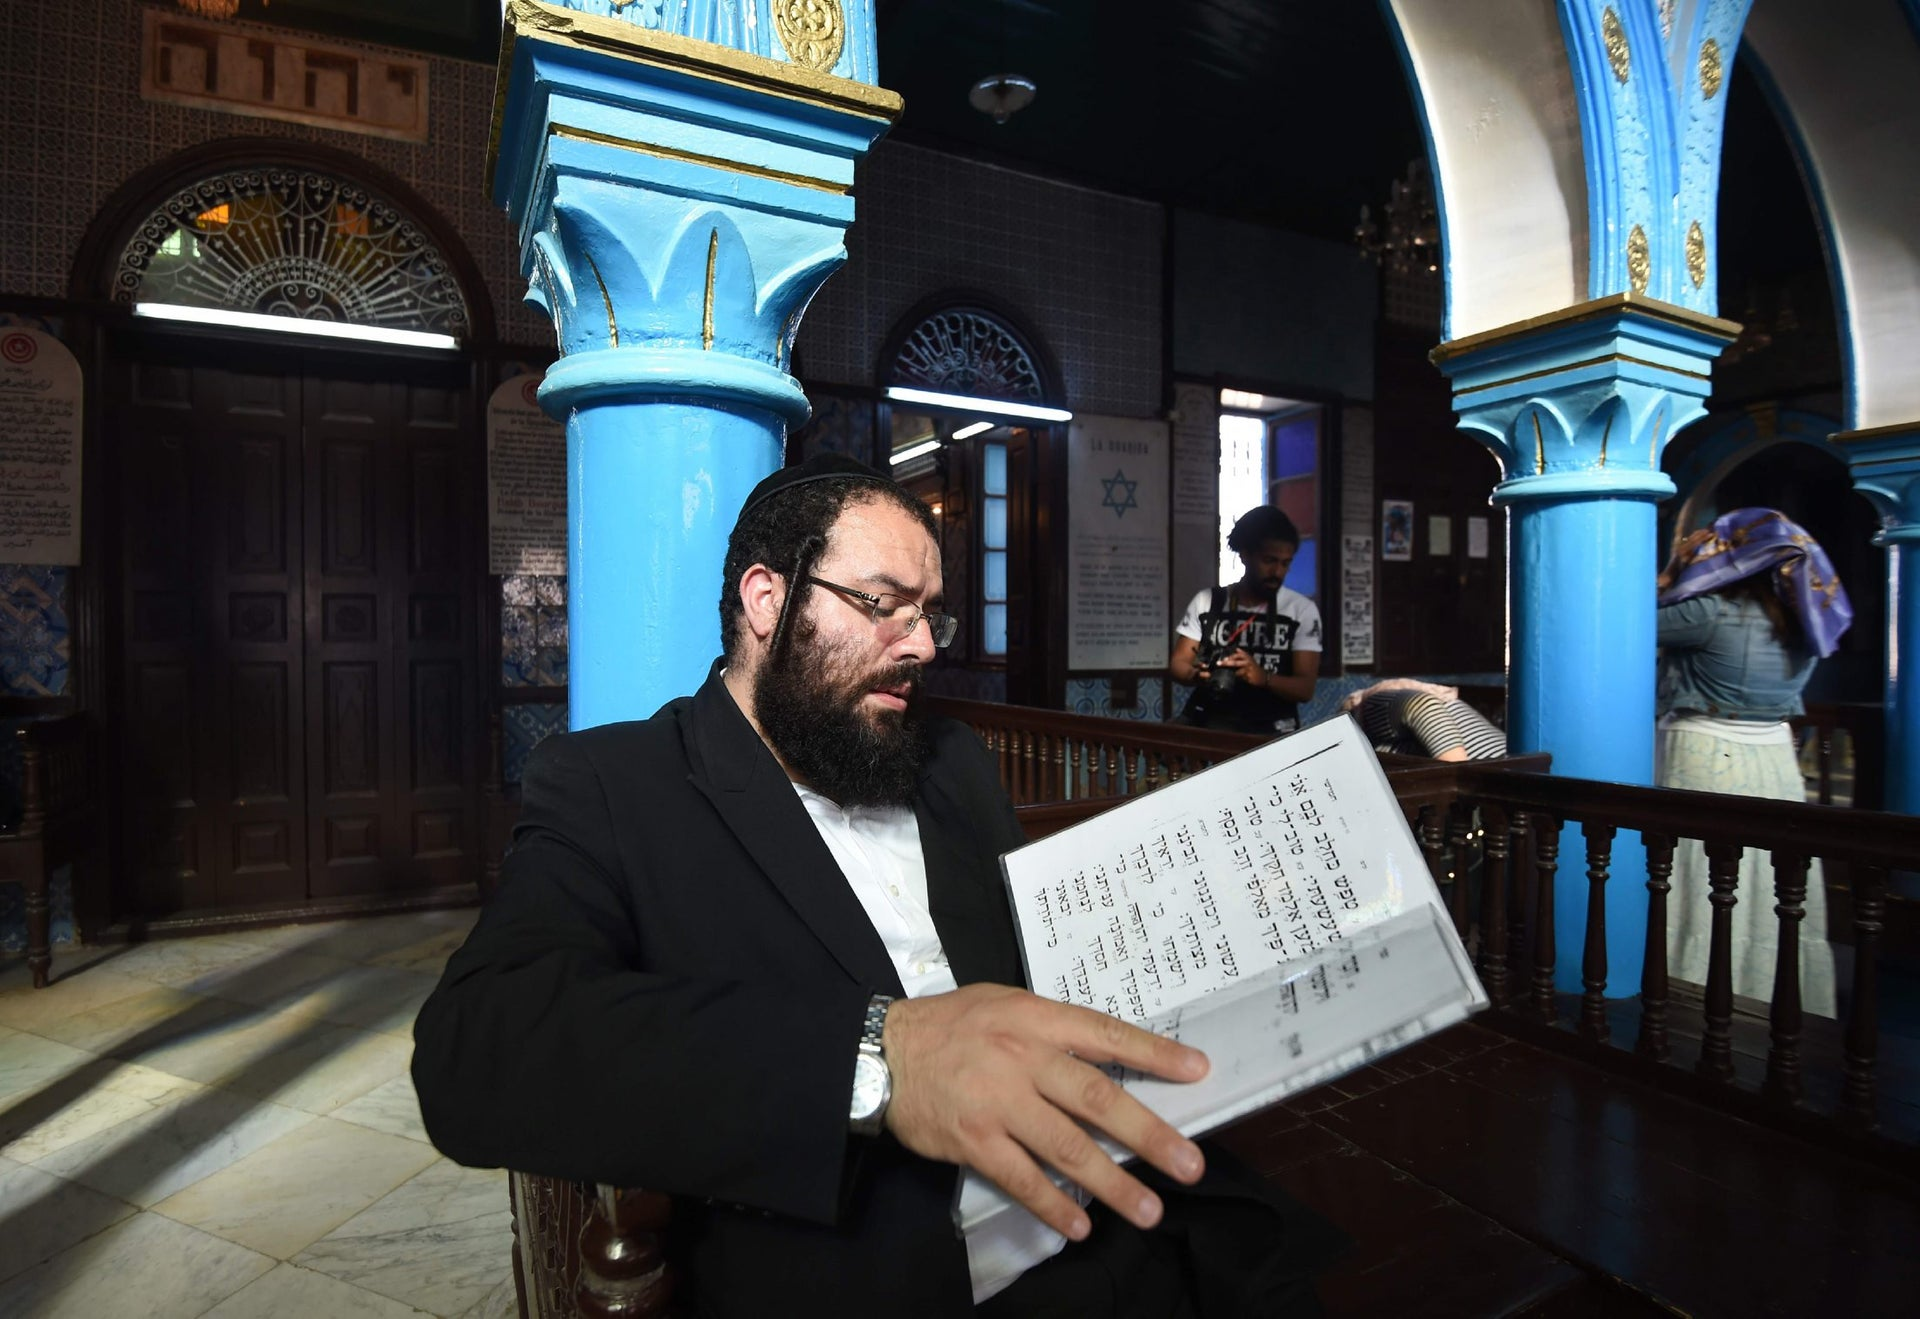 An Israeli rabbi reads the Torah, Judaism's most important text, at the Ghriba synagogue on the Tunisian resort island of Djerba during the annual Jewish pilgrimage on May 25, 2016.